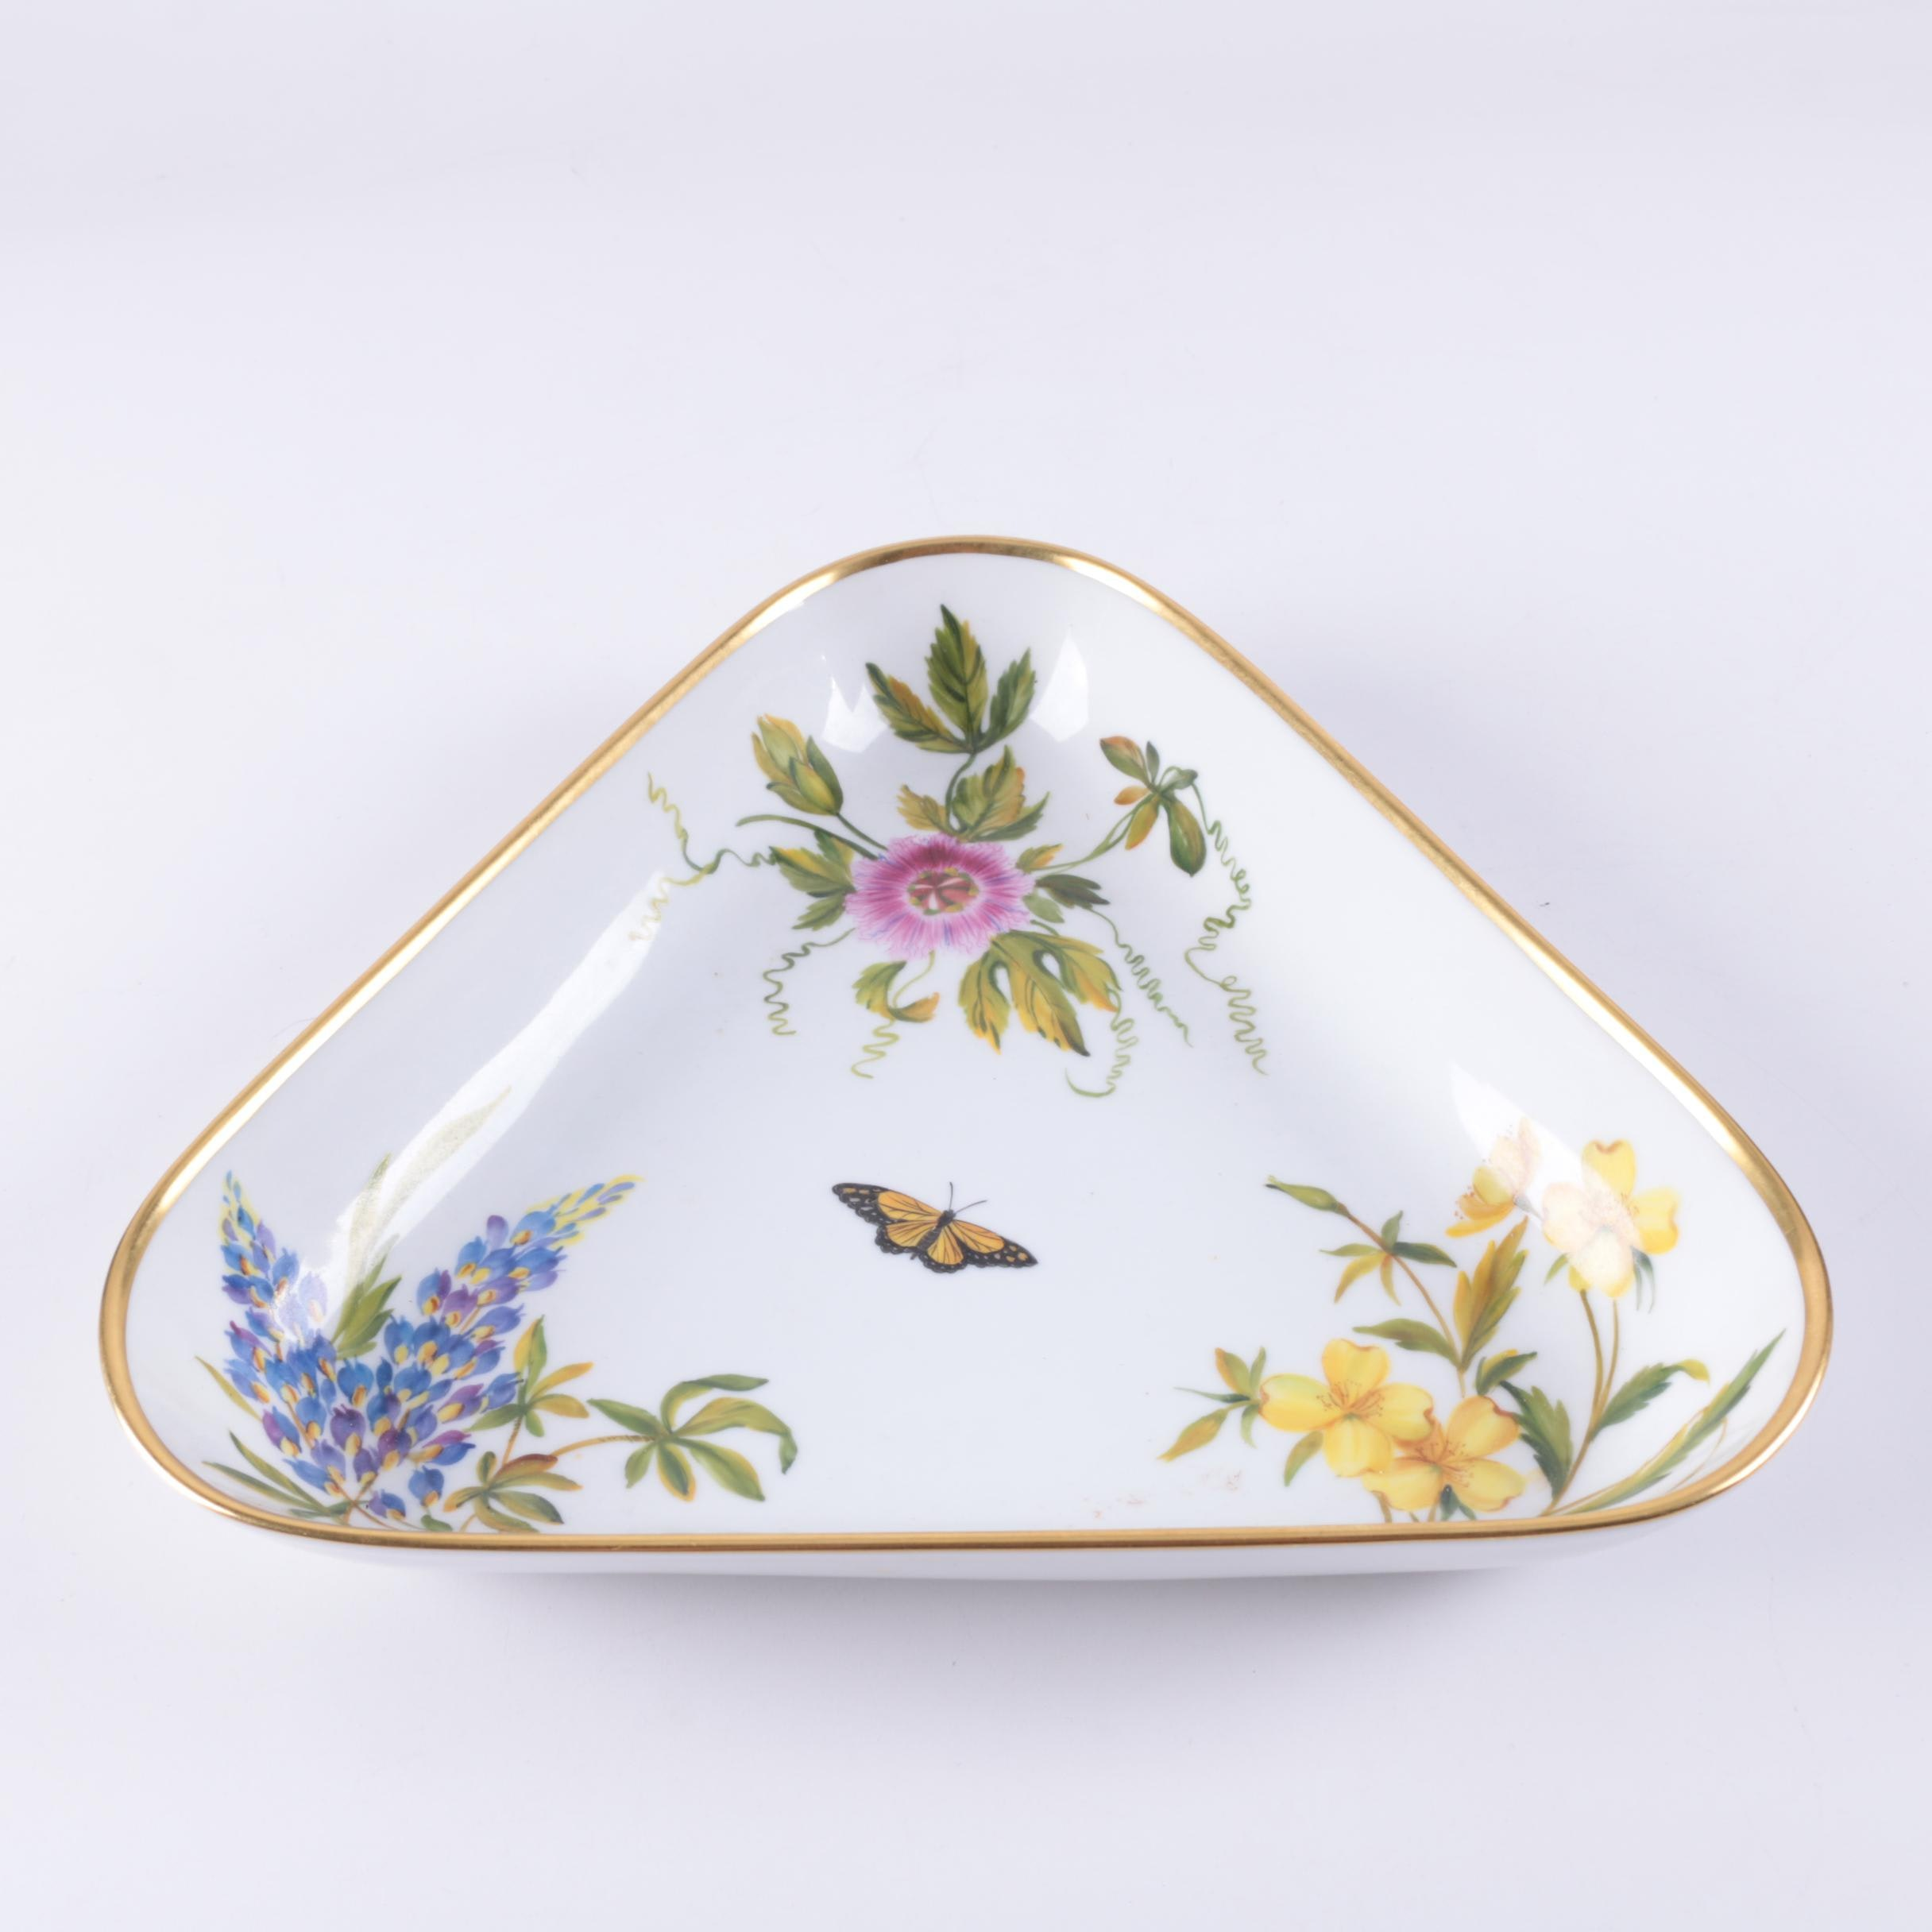 Herend Hungary Triangular Butterfly and Floral Porcelain Bowl